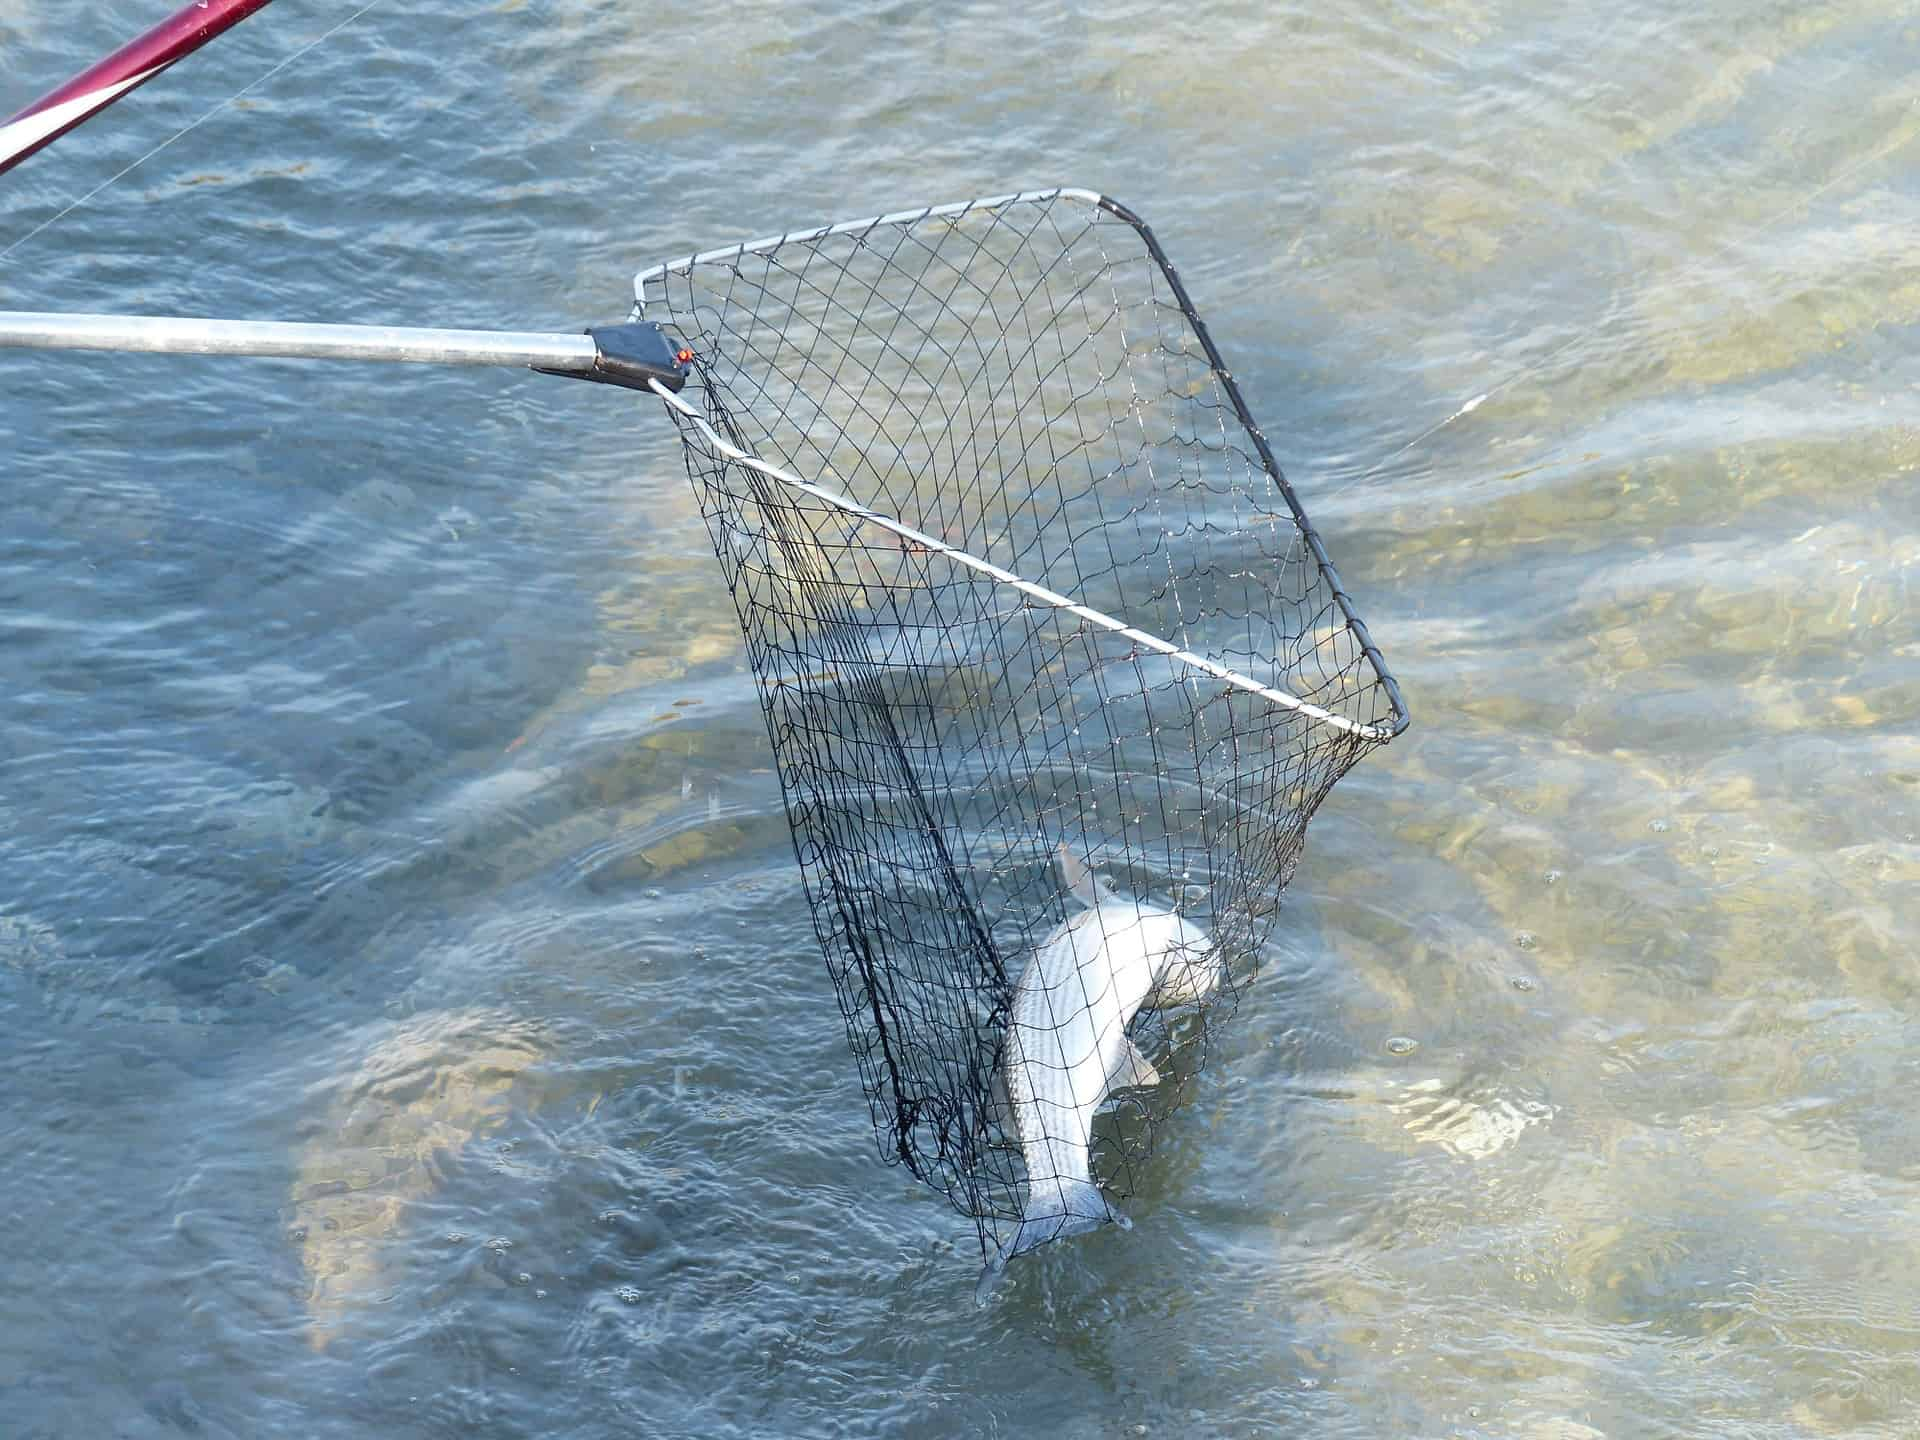 landing a fish with a net